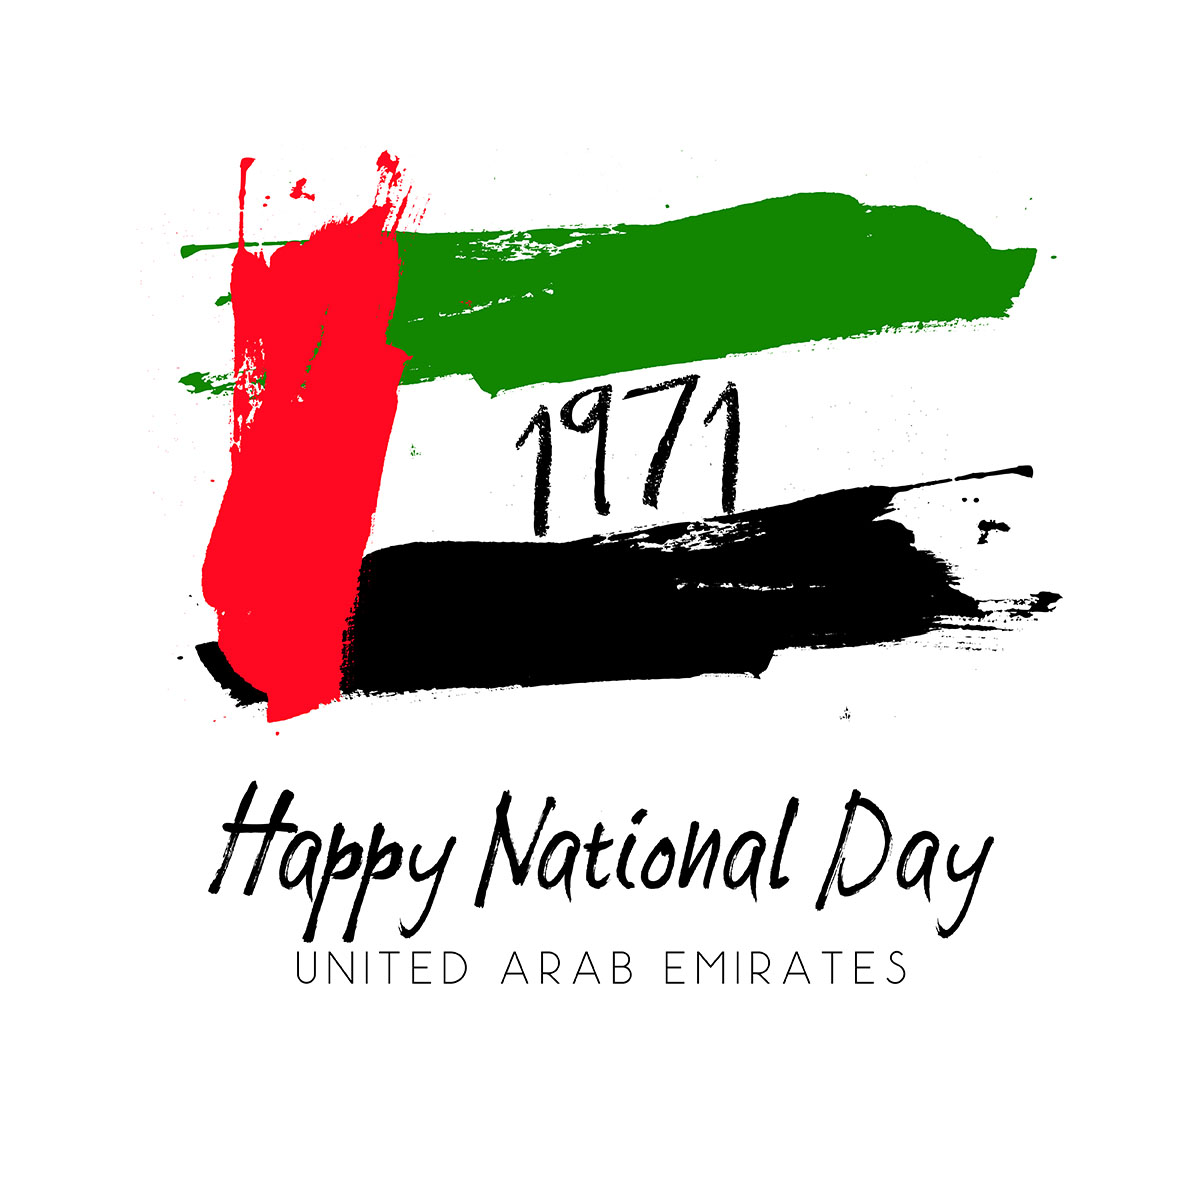 Grunge Style Image For Uae National Day Download Free Vector Art